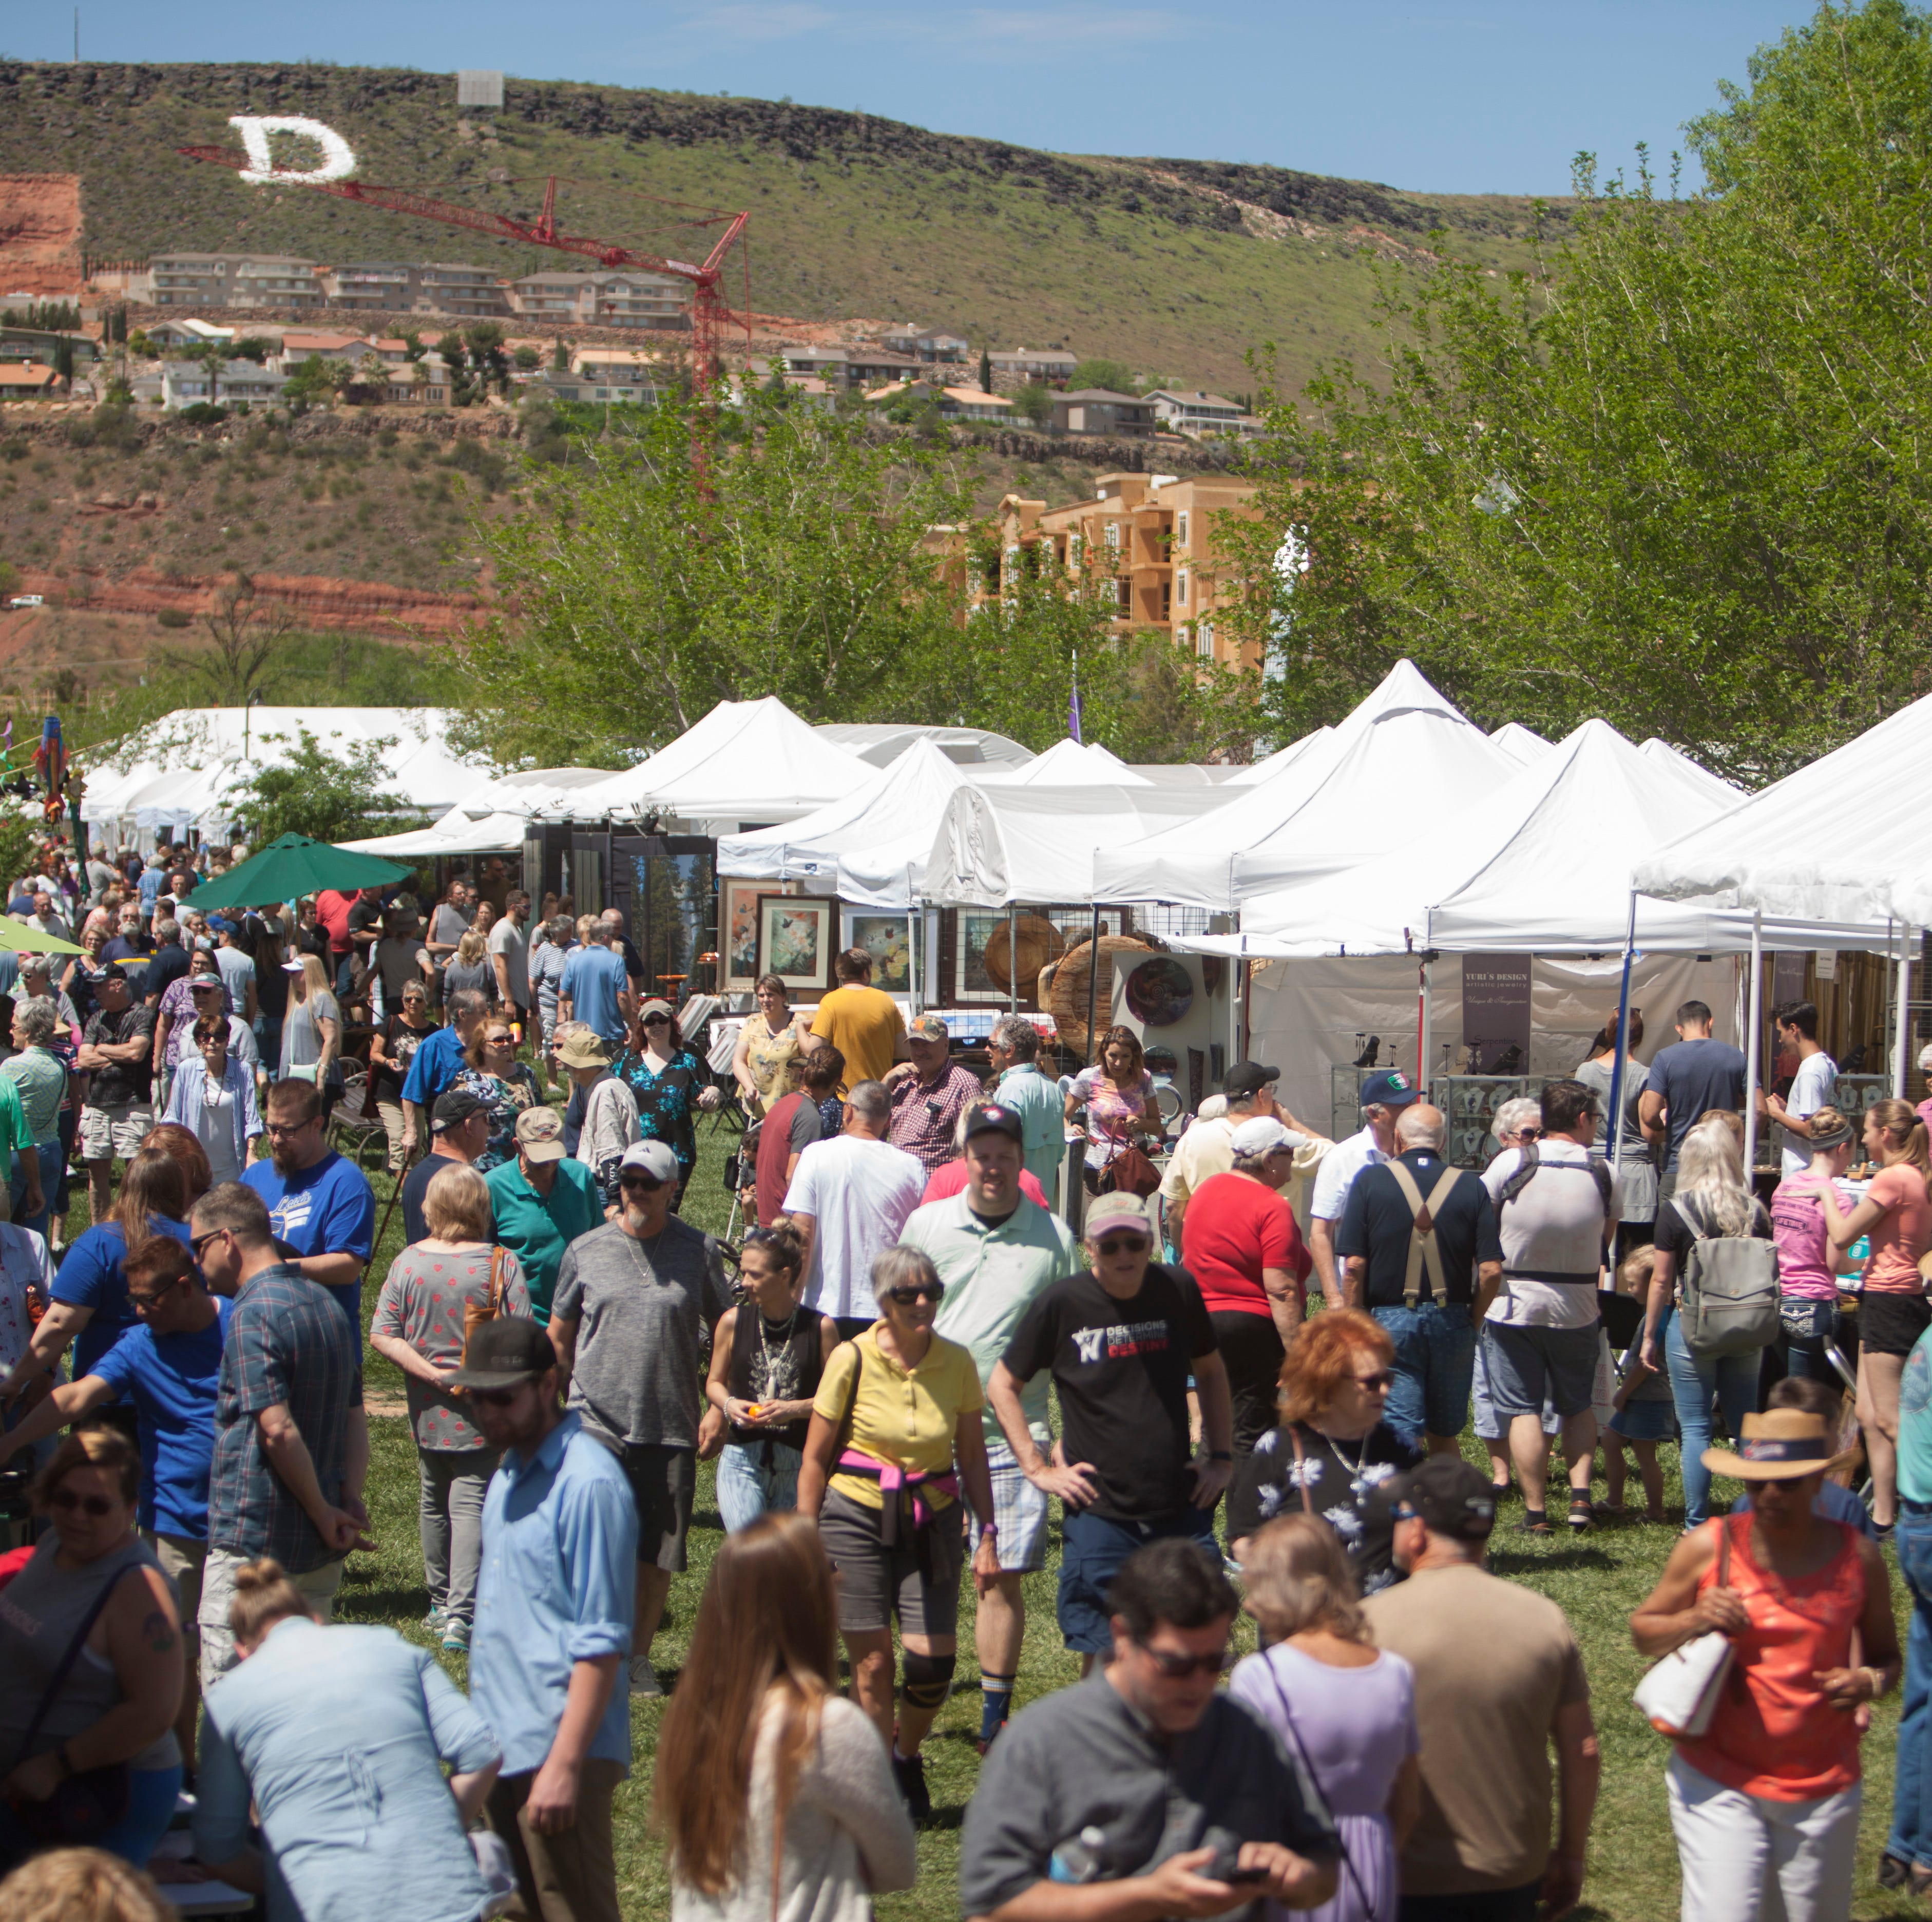 How did it get so busy? Tourists, snowbirds boost St. George area population nearly 30%